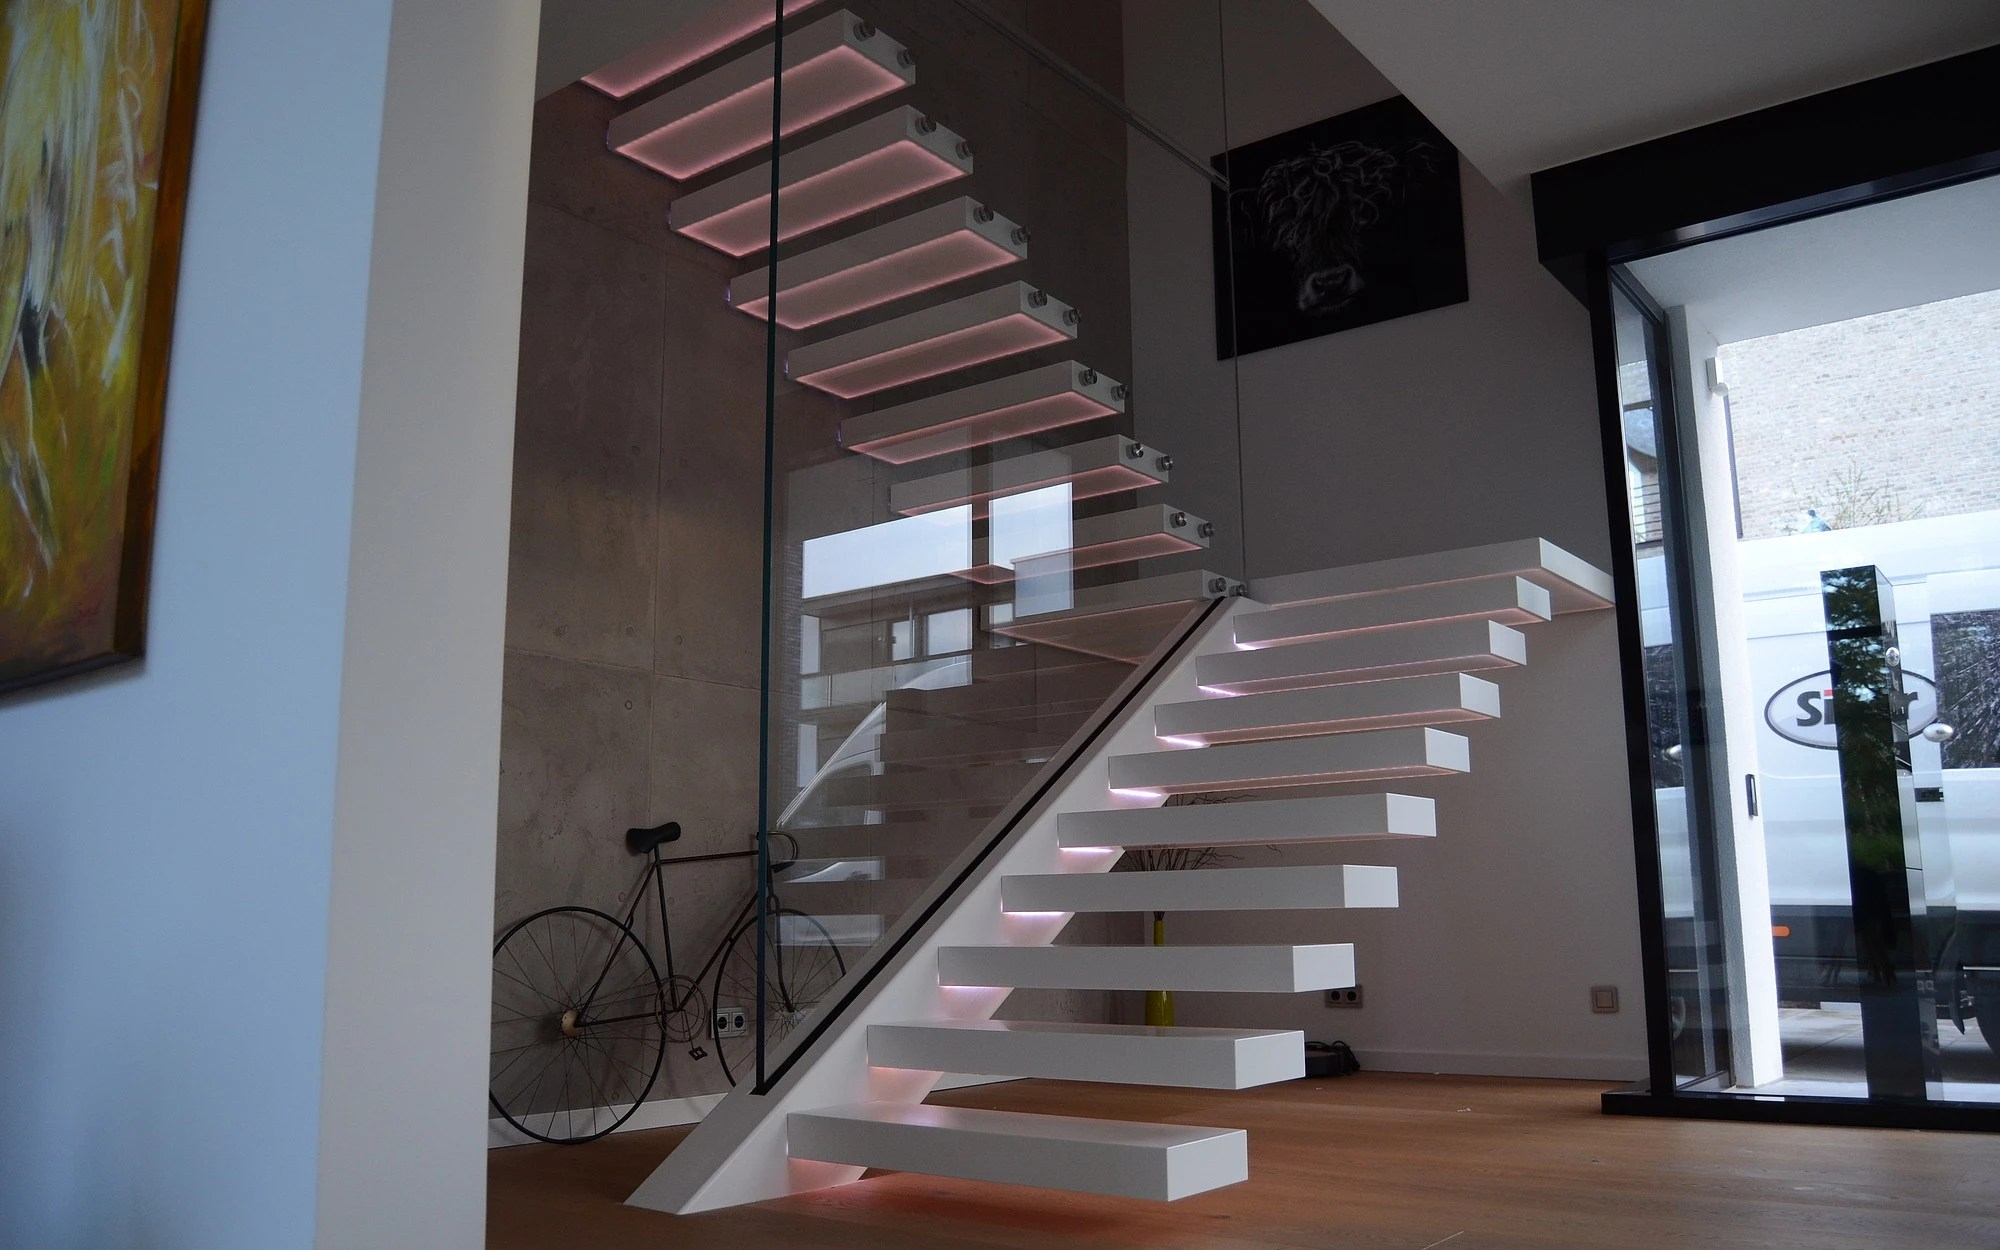 Siller Treppen Corian Staircase With Led Lighted Treads - Siller Stairs